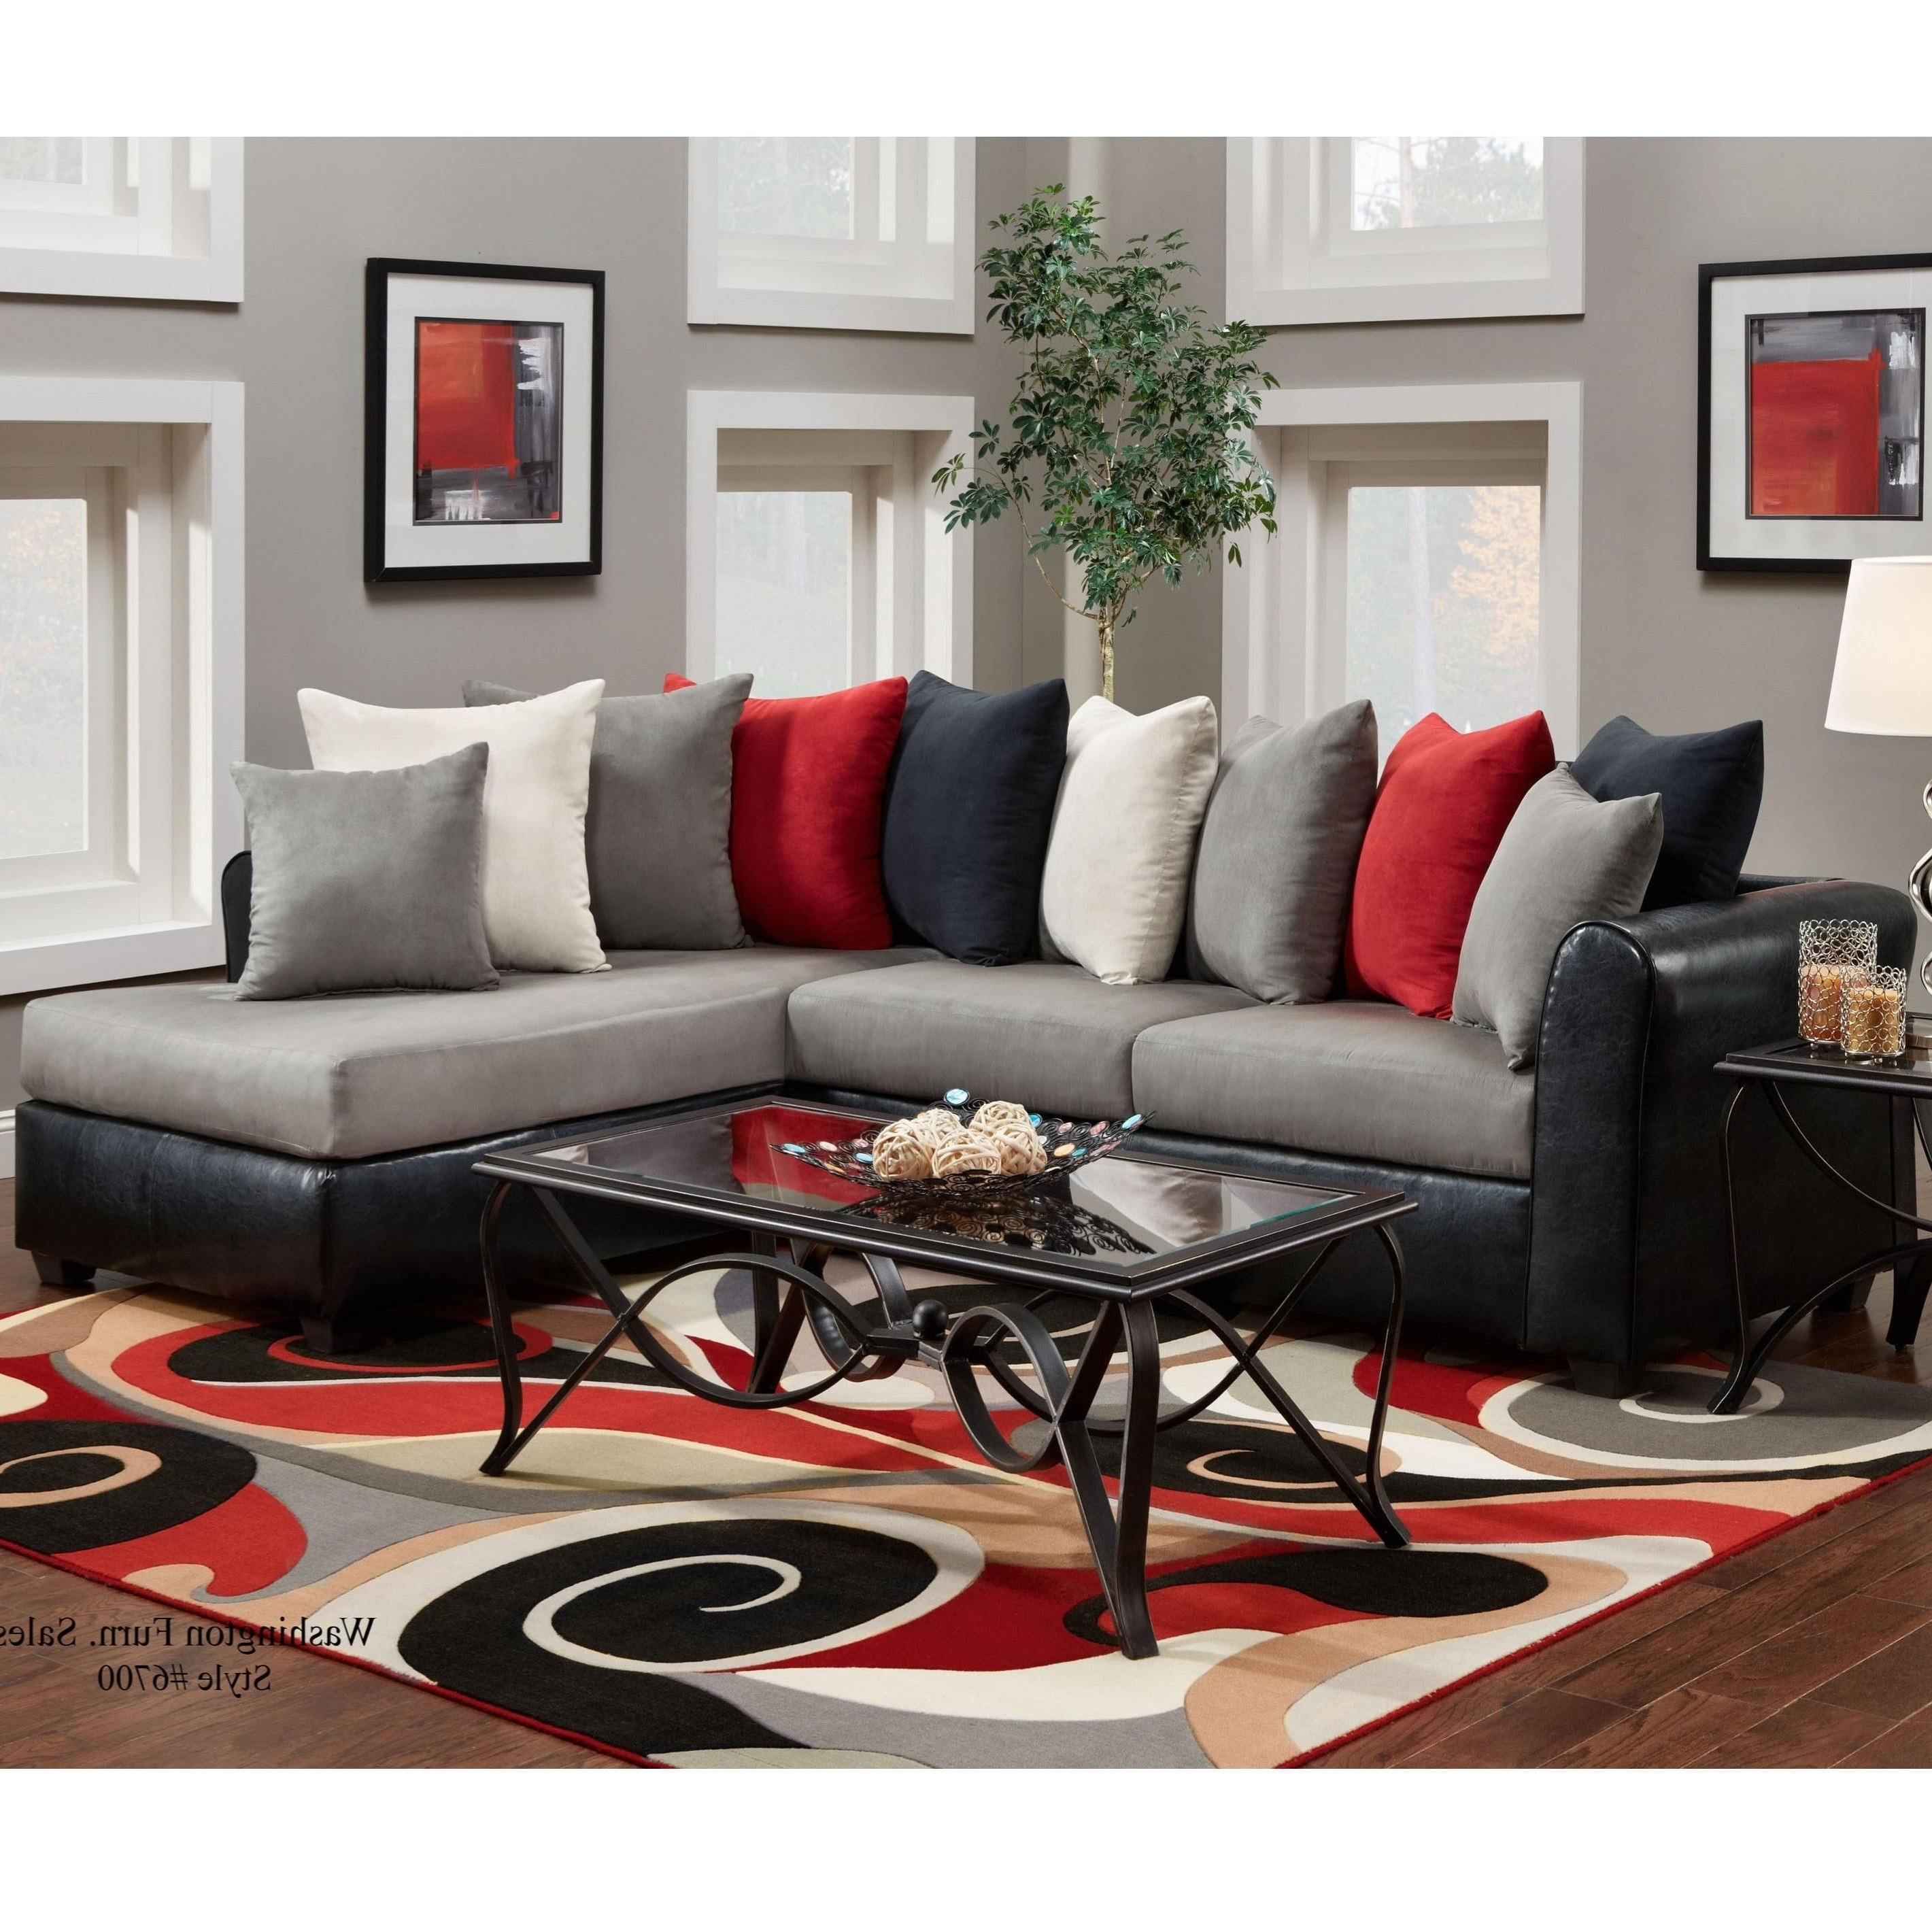 Most Popular Washington Furniture 6700 Sectional With Rsf Chaise And Pillow Inside Phoenix Sectional Sofas (View 10 of 20)